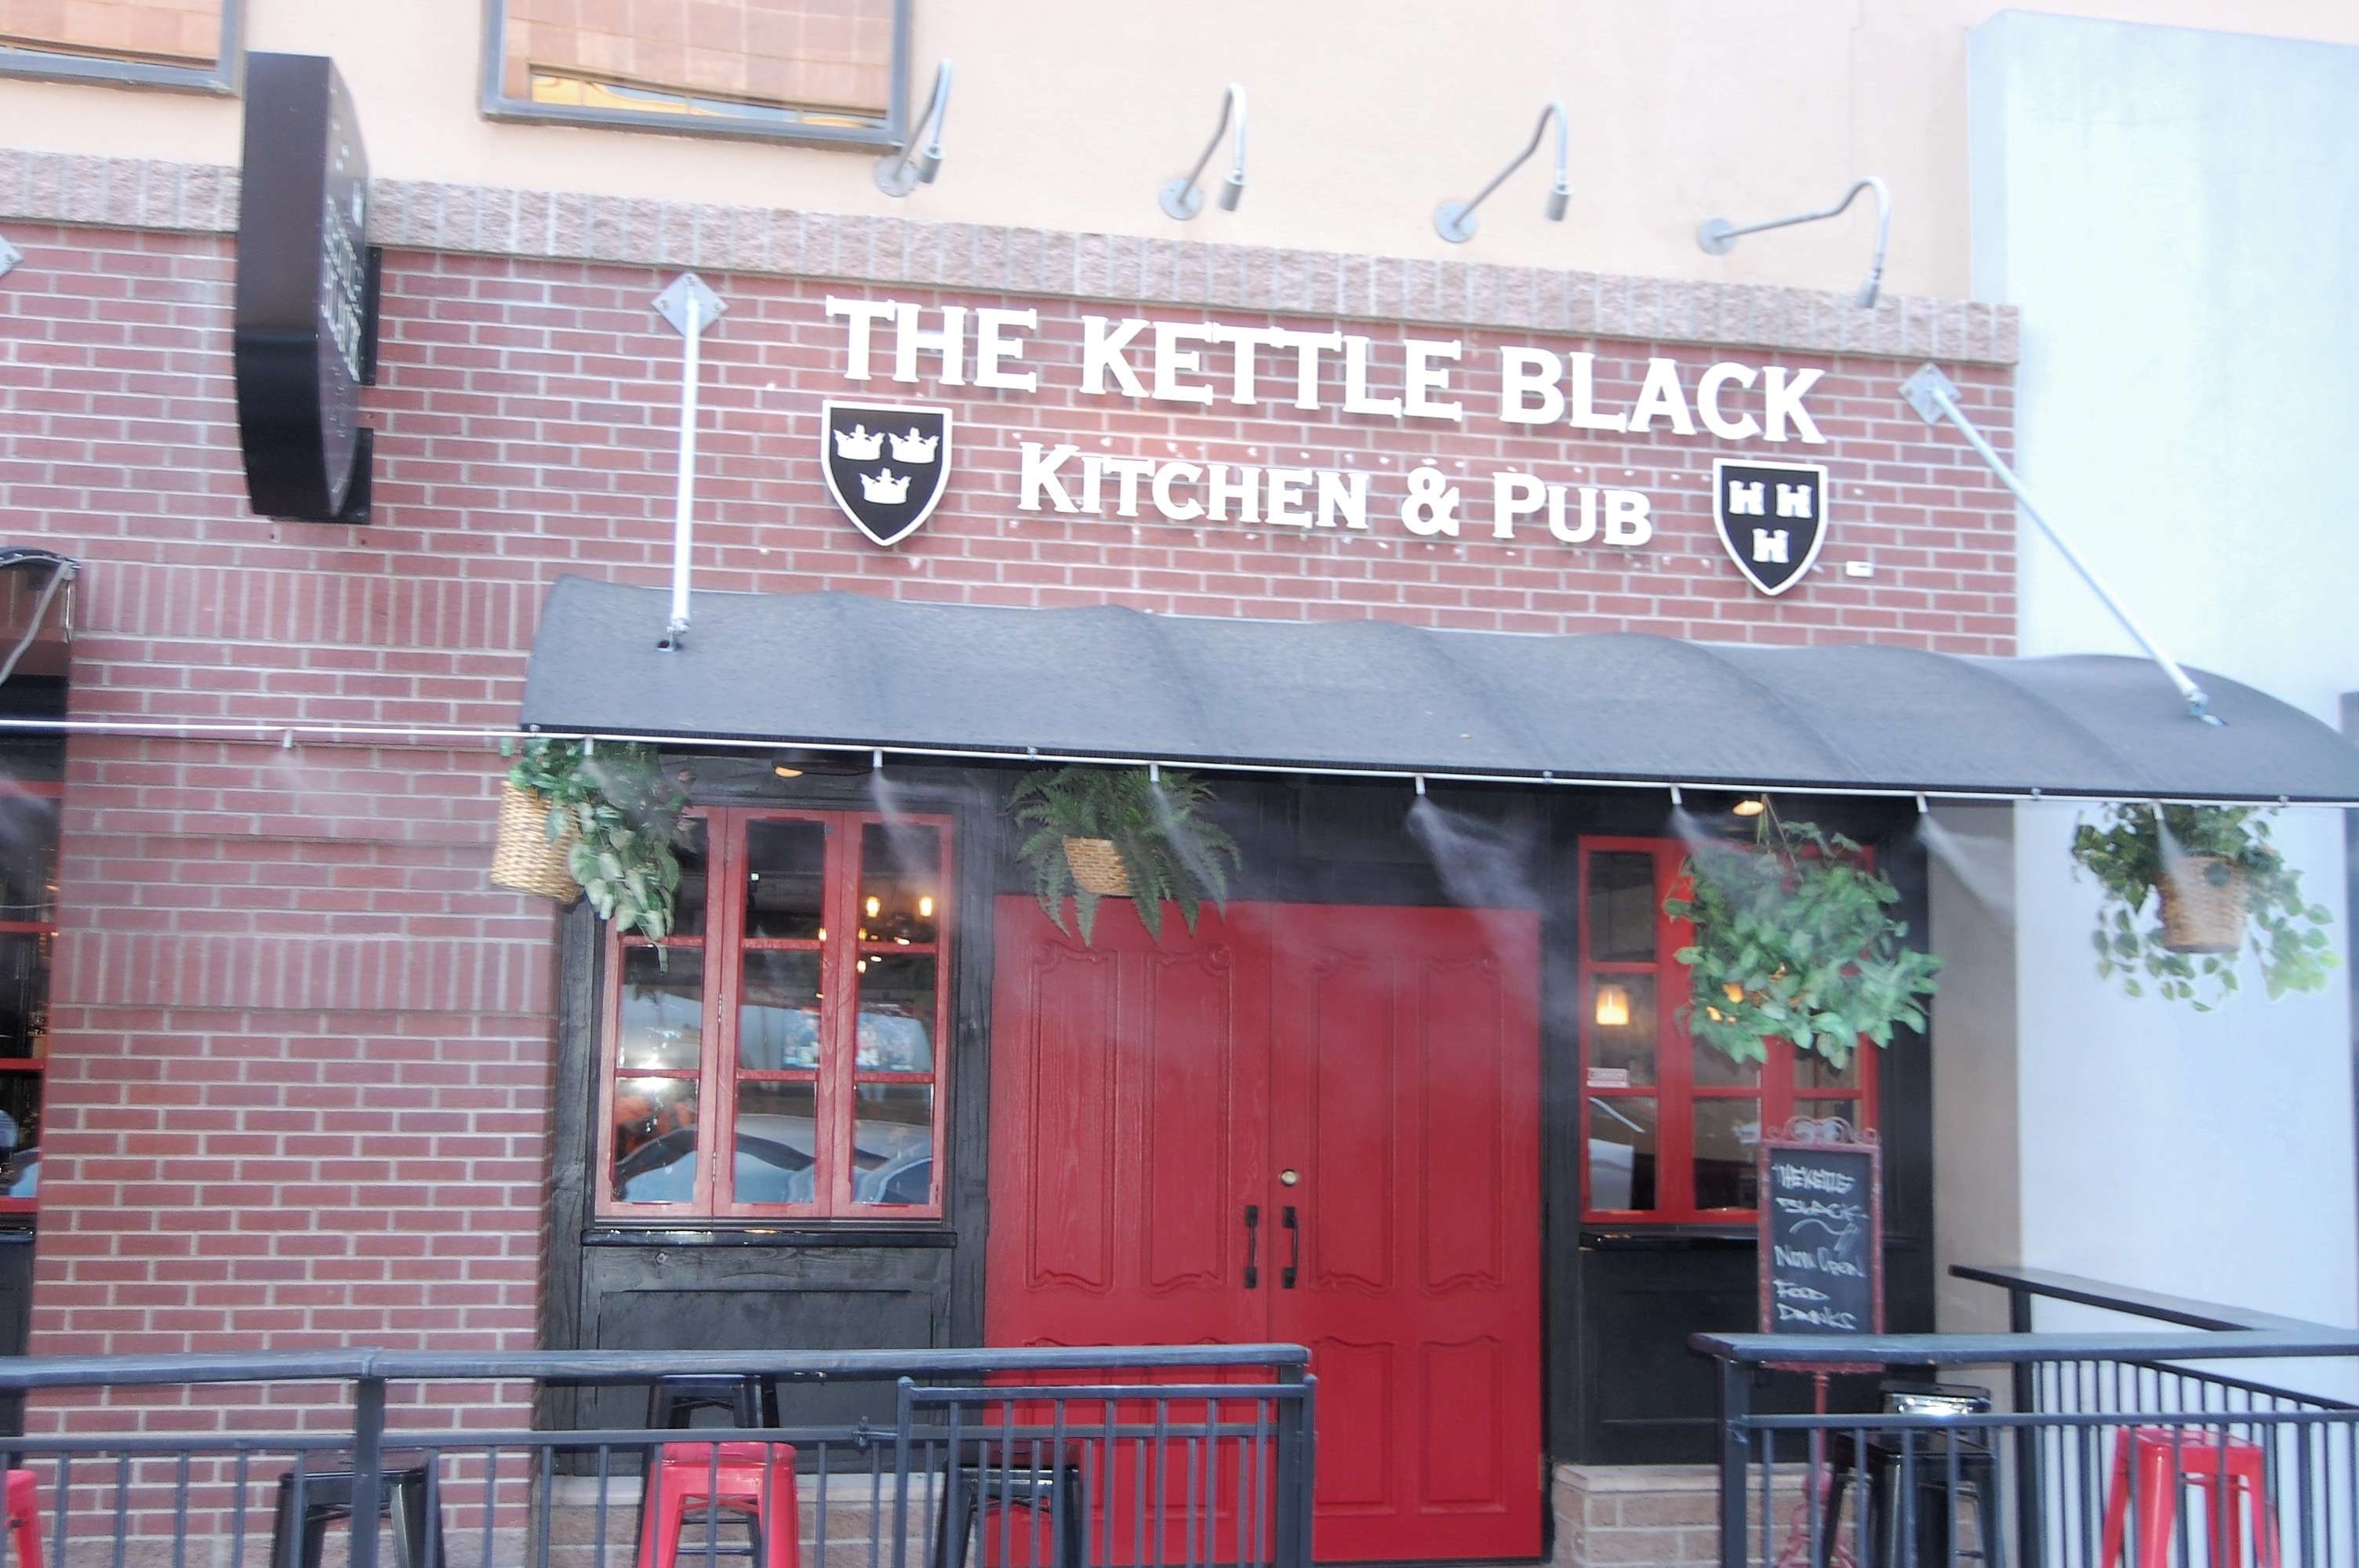 The Kettle Black Kitchen and Pub